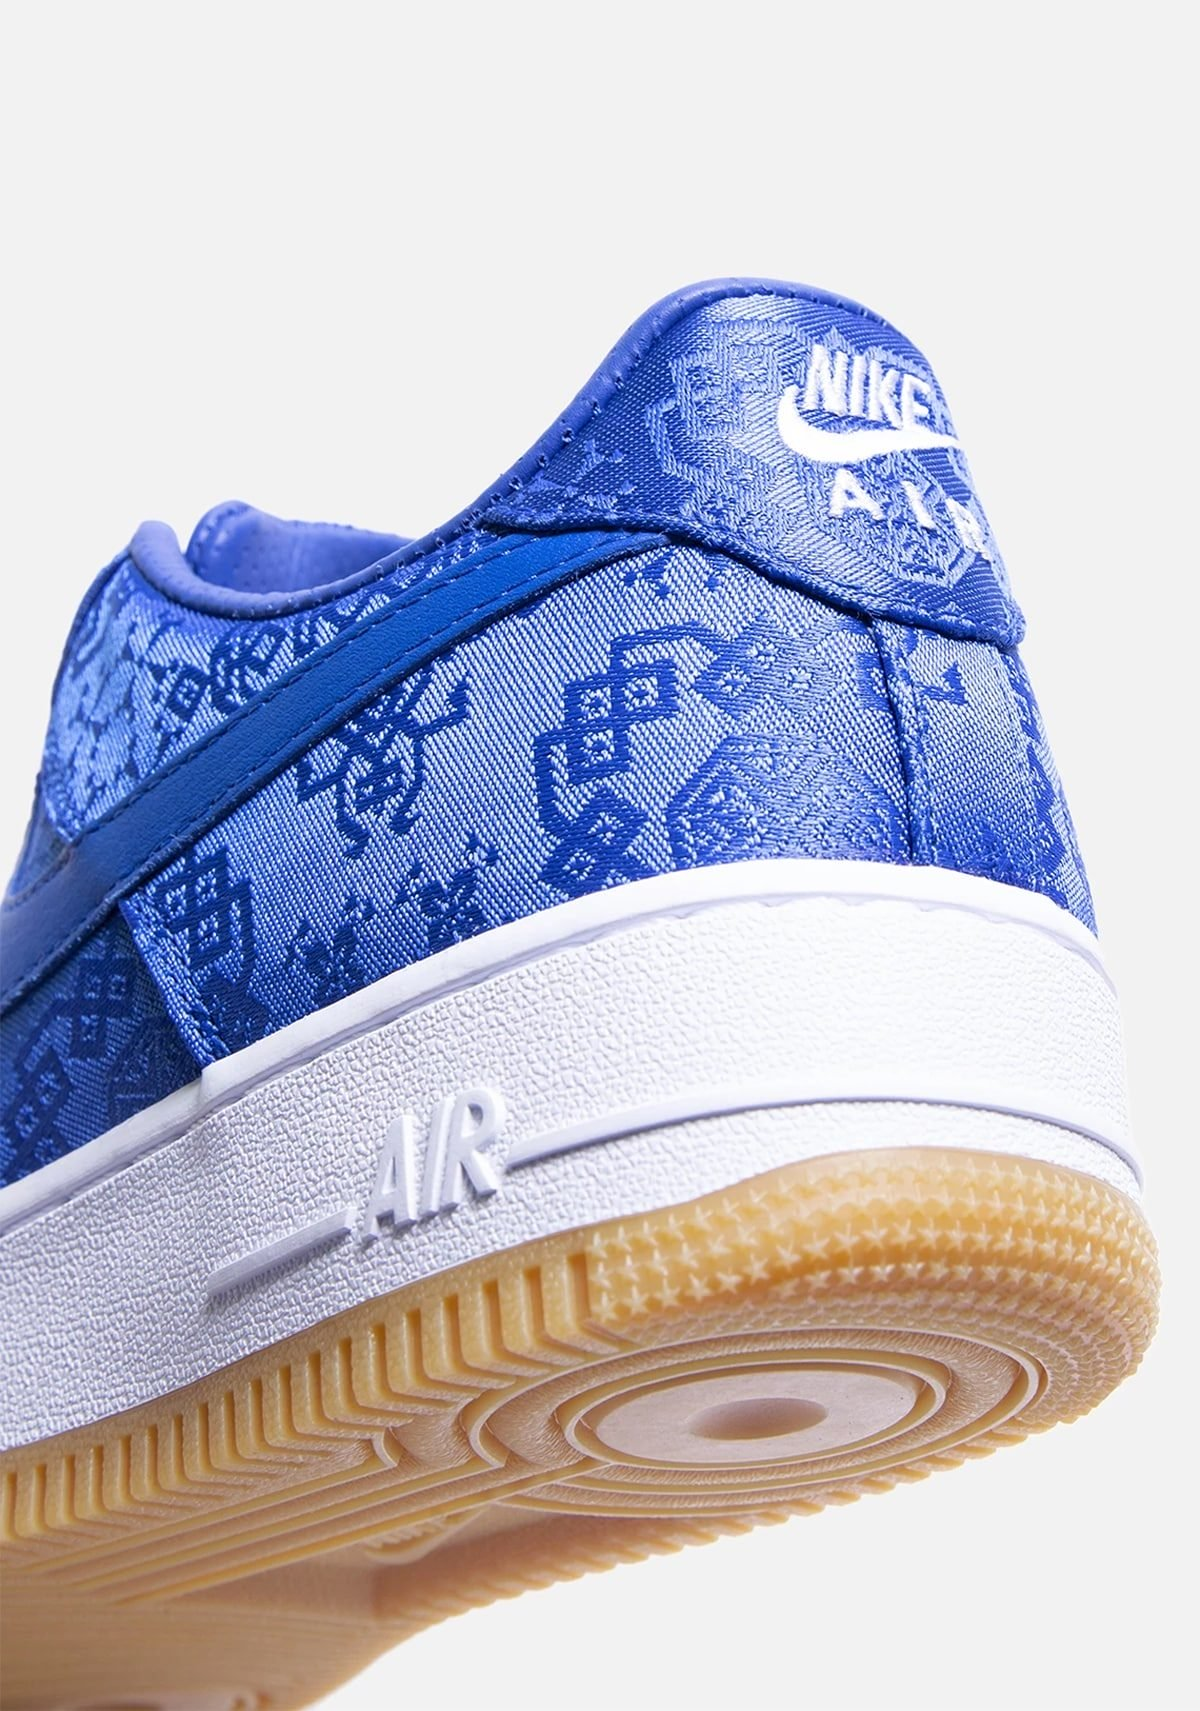 Детальный взгляд на CLOT x Nike Air Force 1 Low «Game Royal»